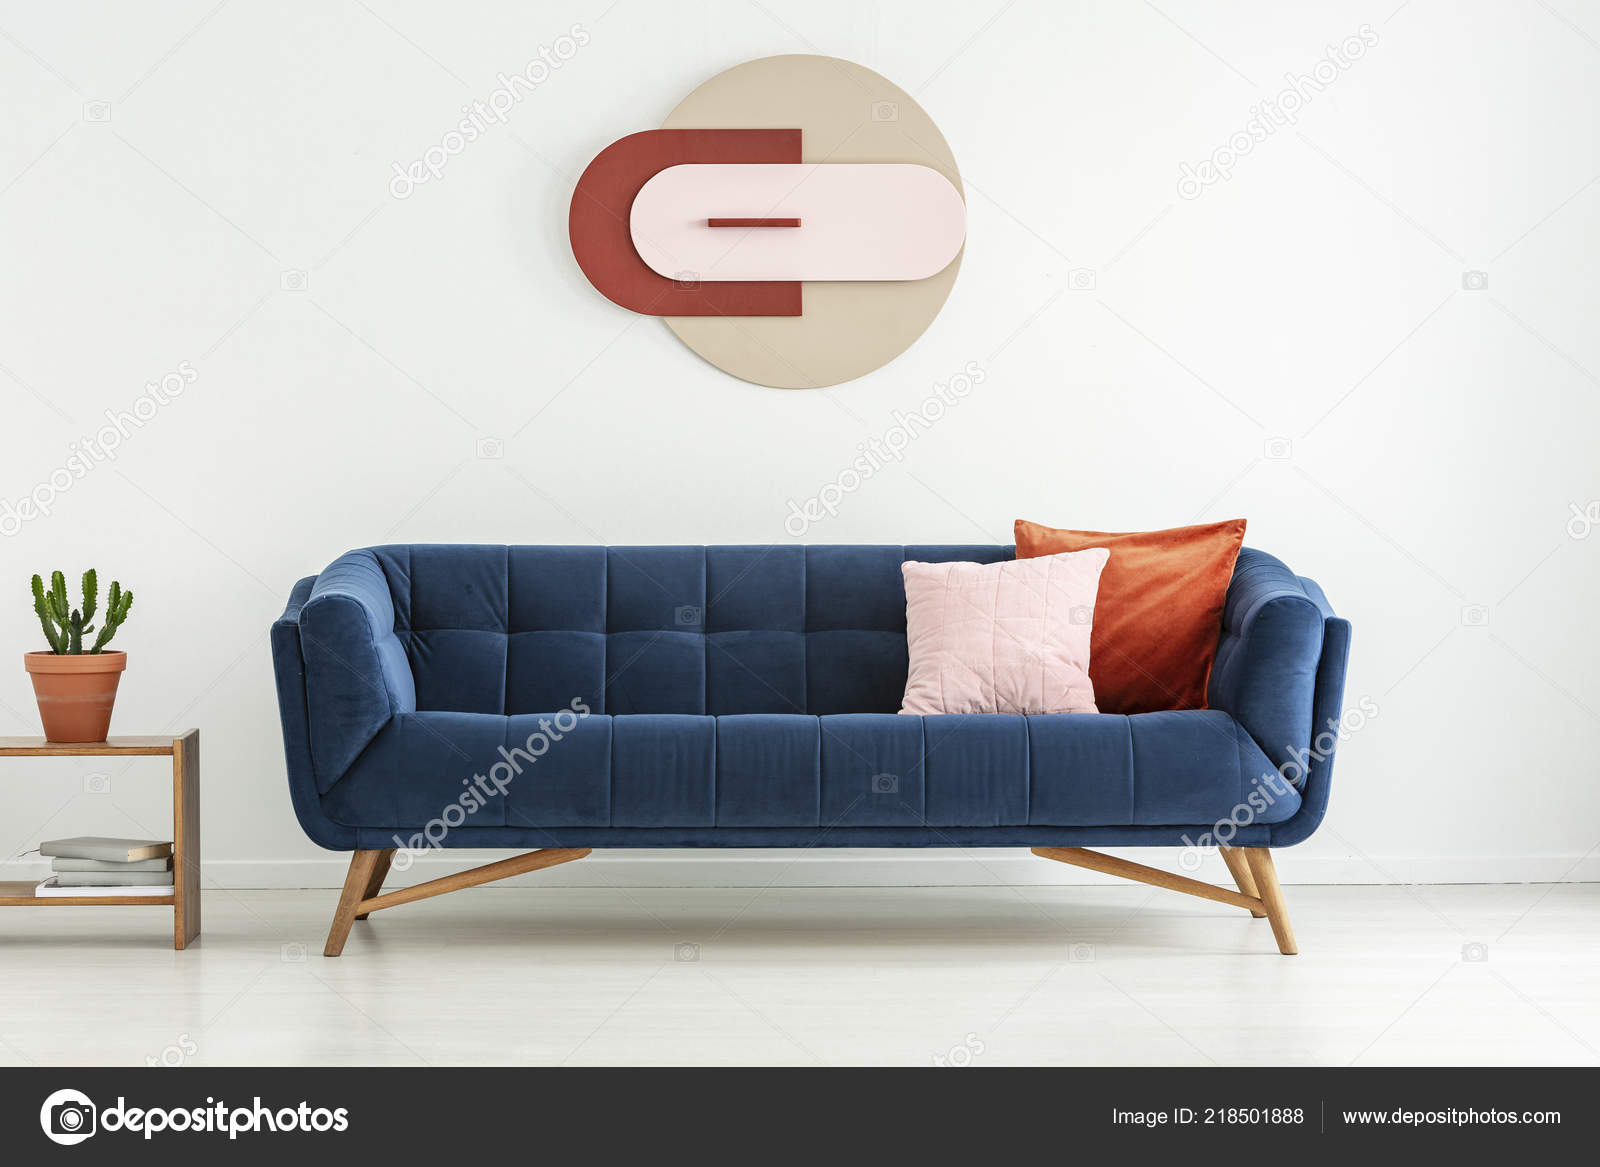 Tremendous Pillows Navy Blue Couch Next Plant Table White Living Room Forskolin Free Trial Chair Design Images Forskolin Free Trialorg